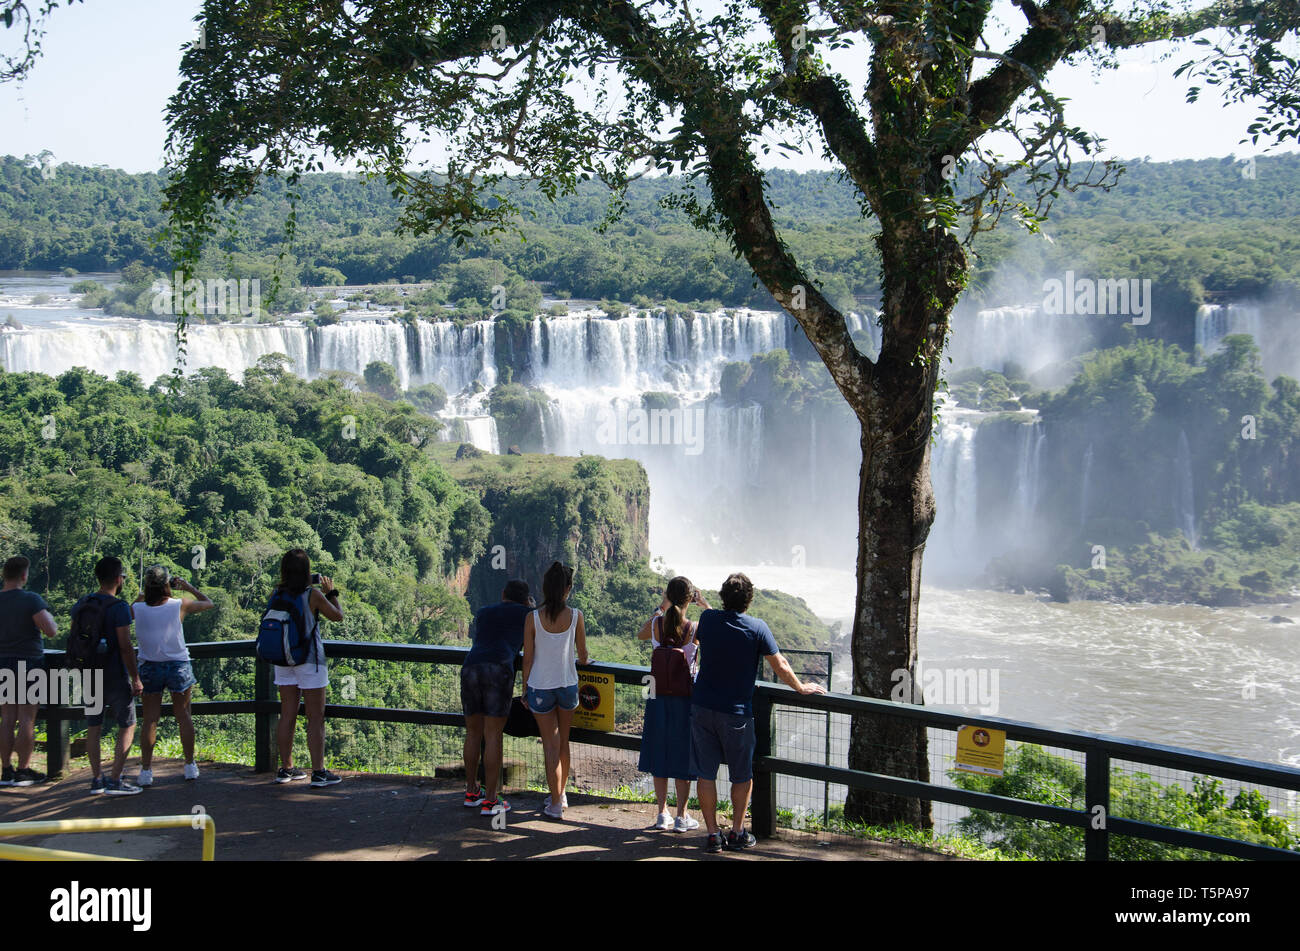 Visitors view the spectacular Iguaçu falls from the Brazilian side Stock Photo